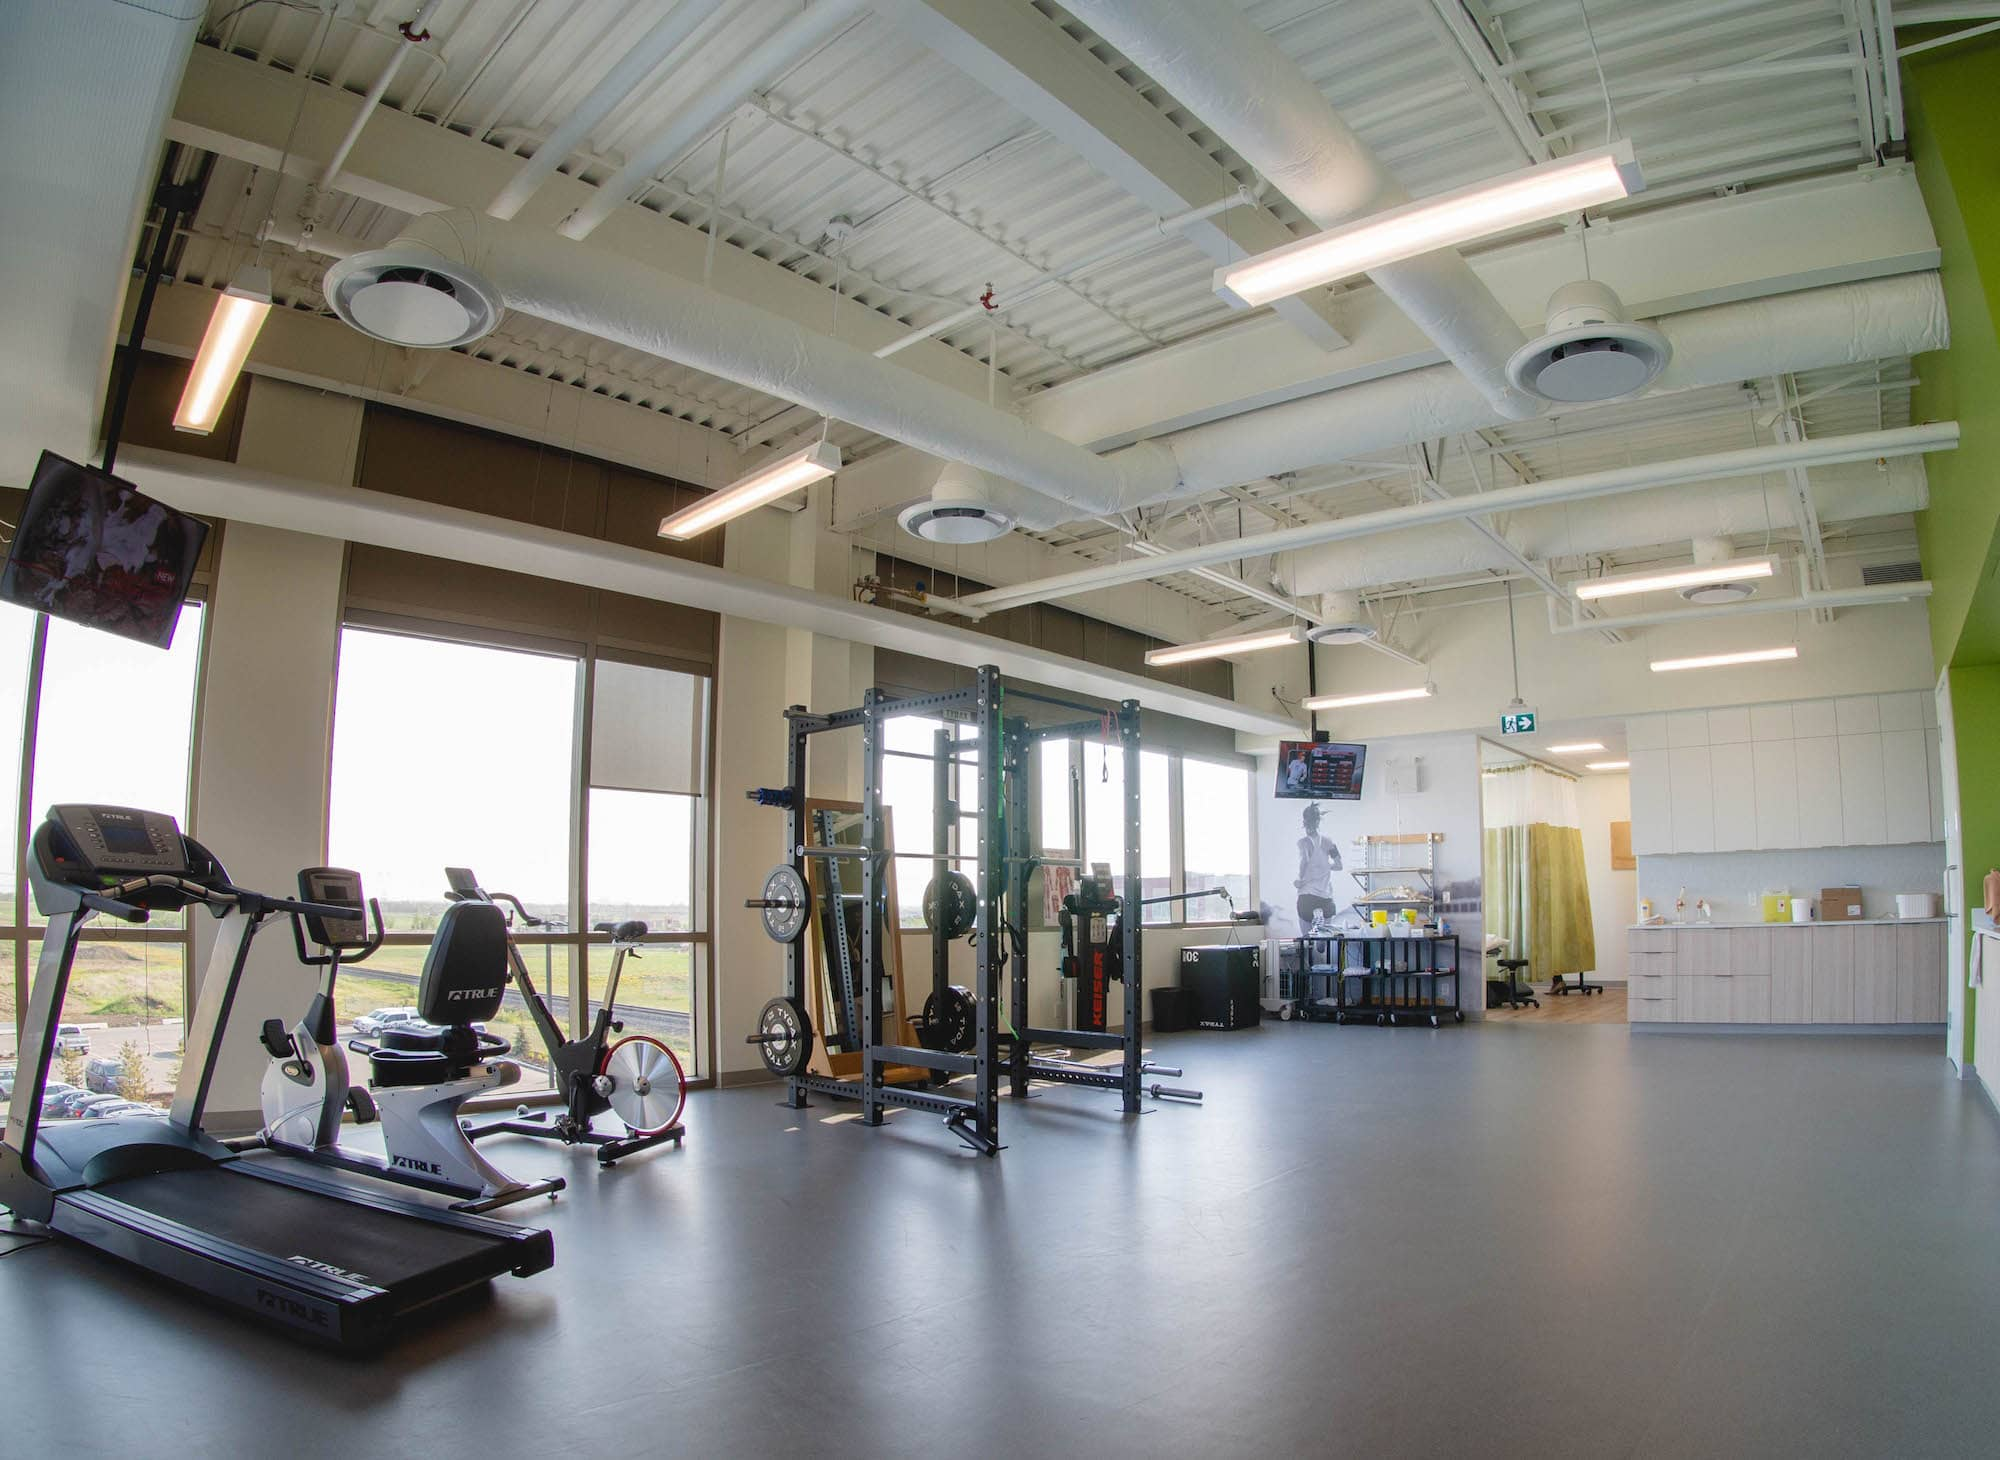 physiotherapy clinic in edmonton training facility with large windows